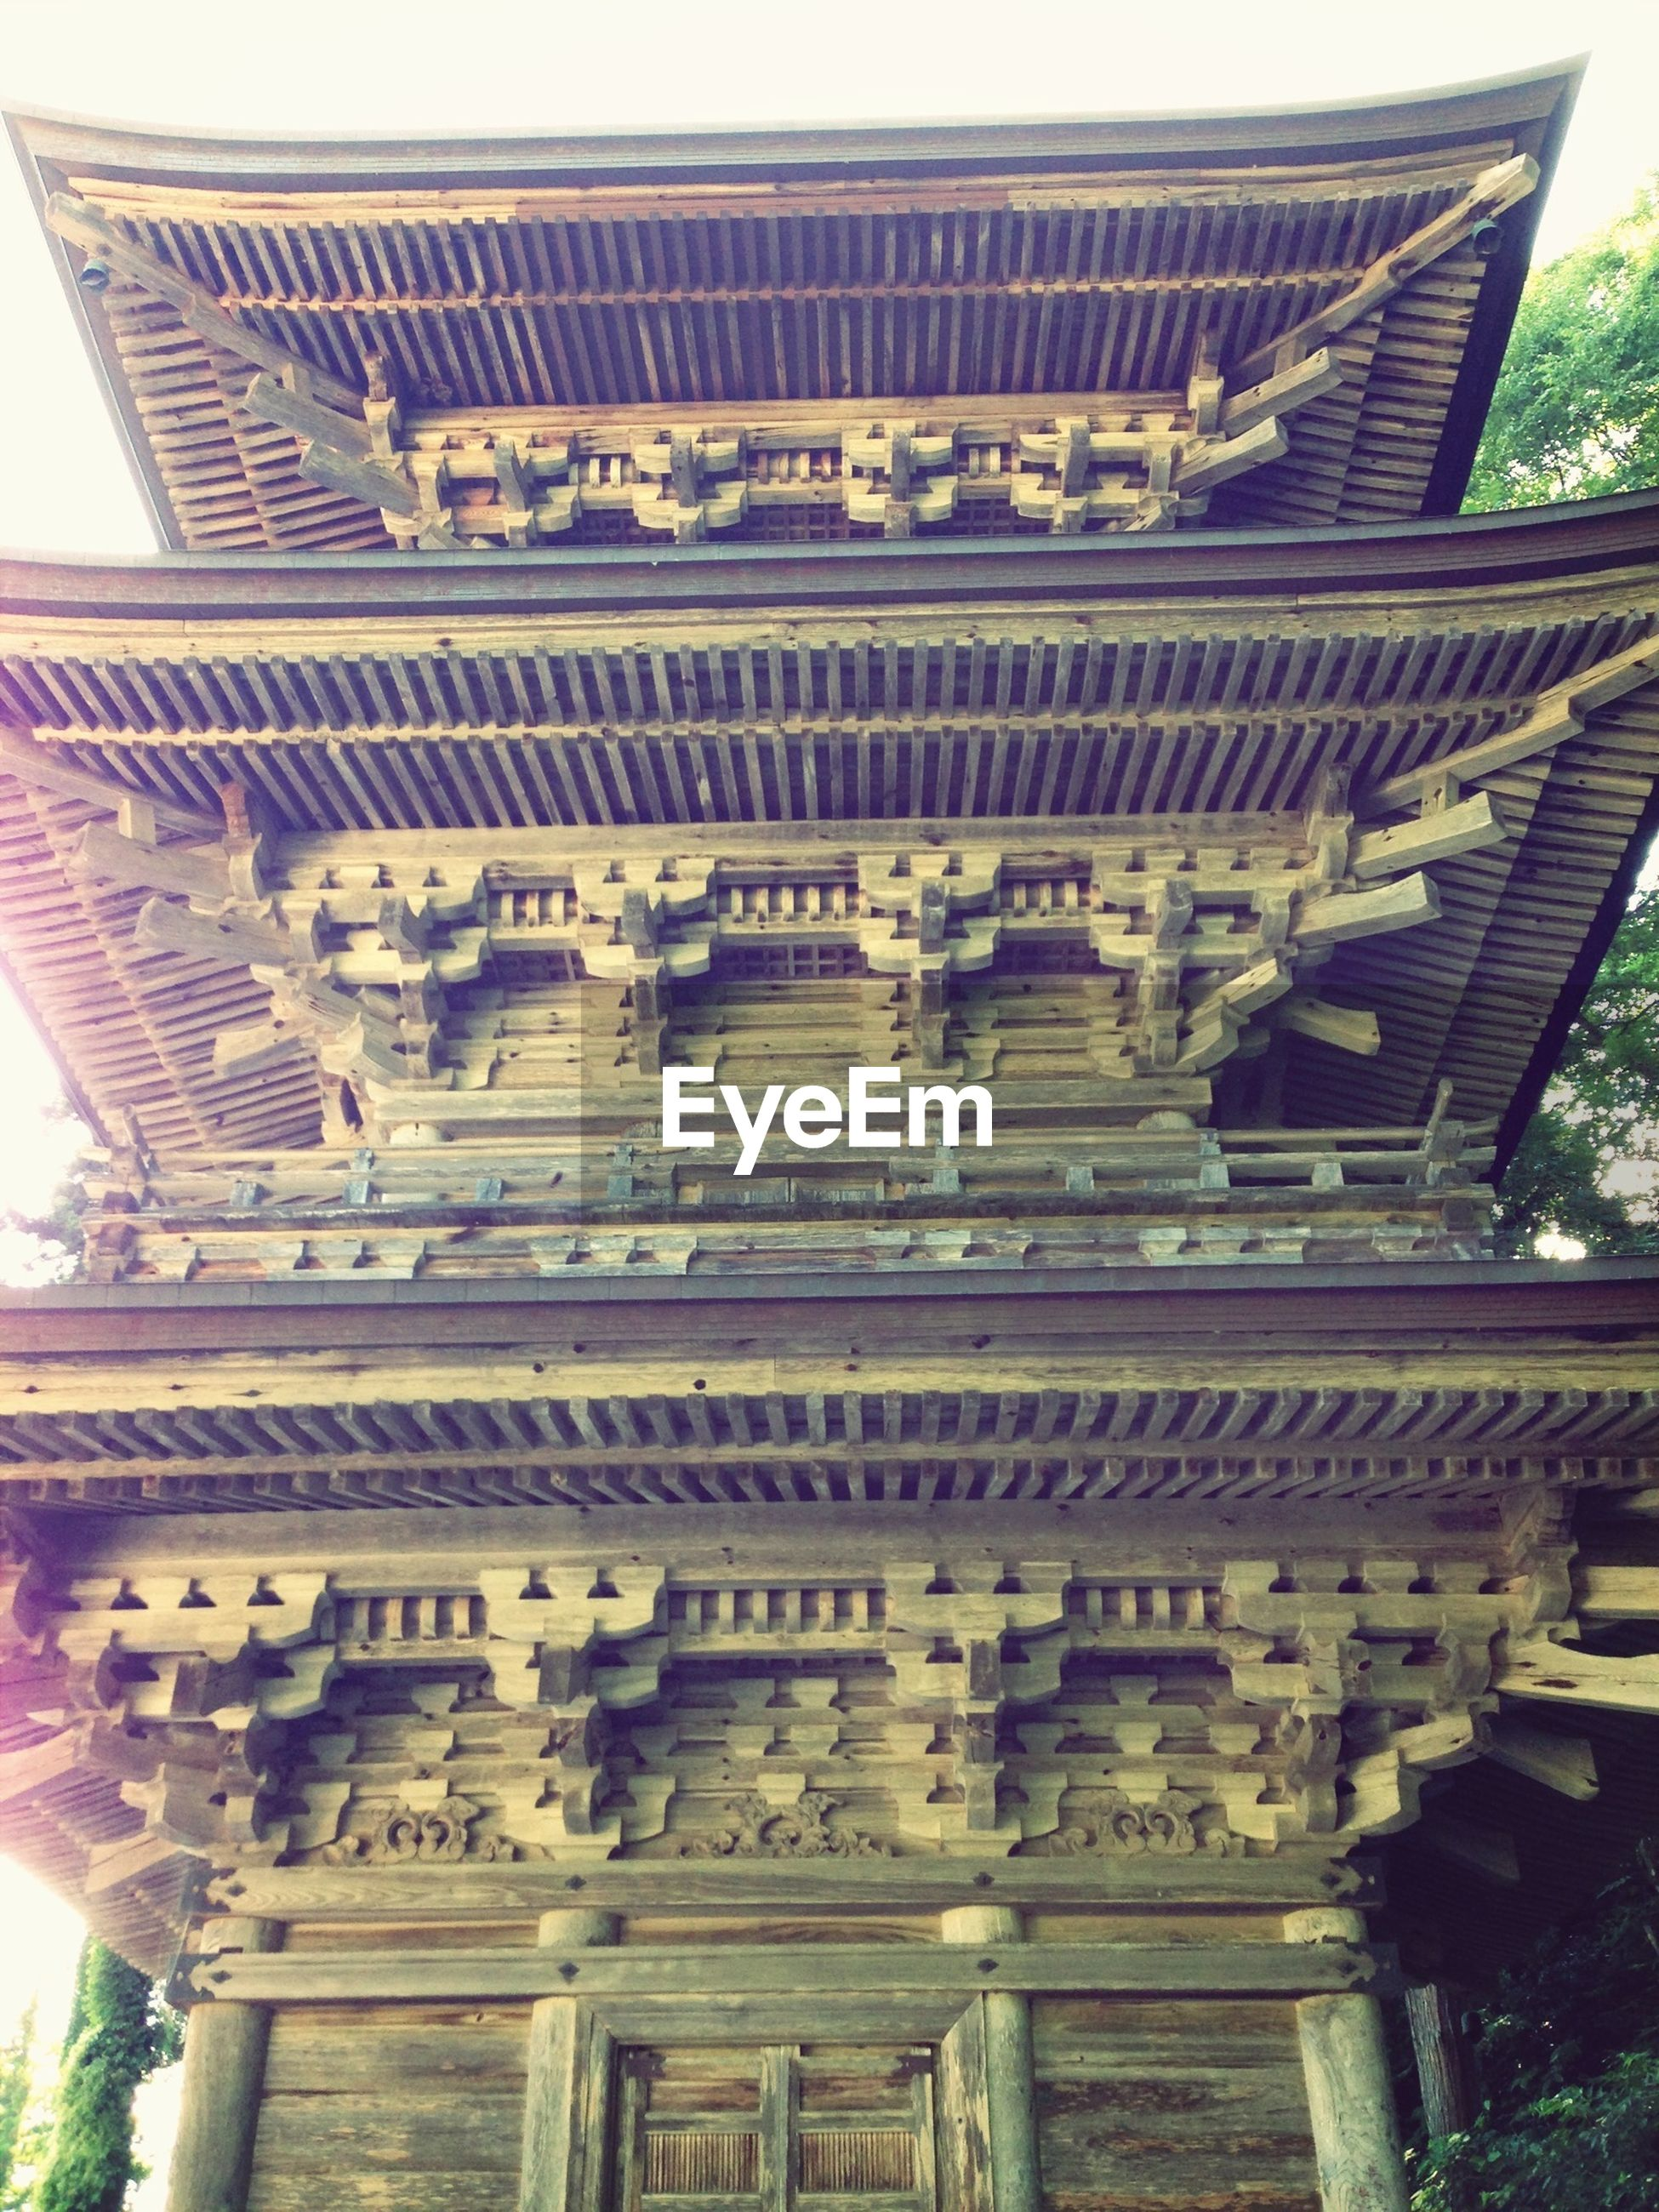 architecture, built structure, building exterior, low angle view, place of worship, religion, history, ornate, famous place, spirituality, temple - building, art and craft, travel destinations, architectural column, art, architectural feature, carving - craft product, day, tourism